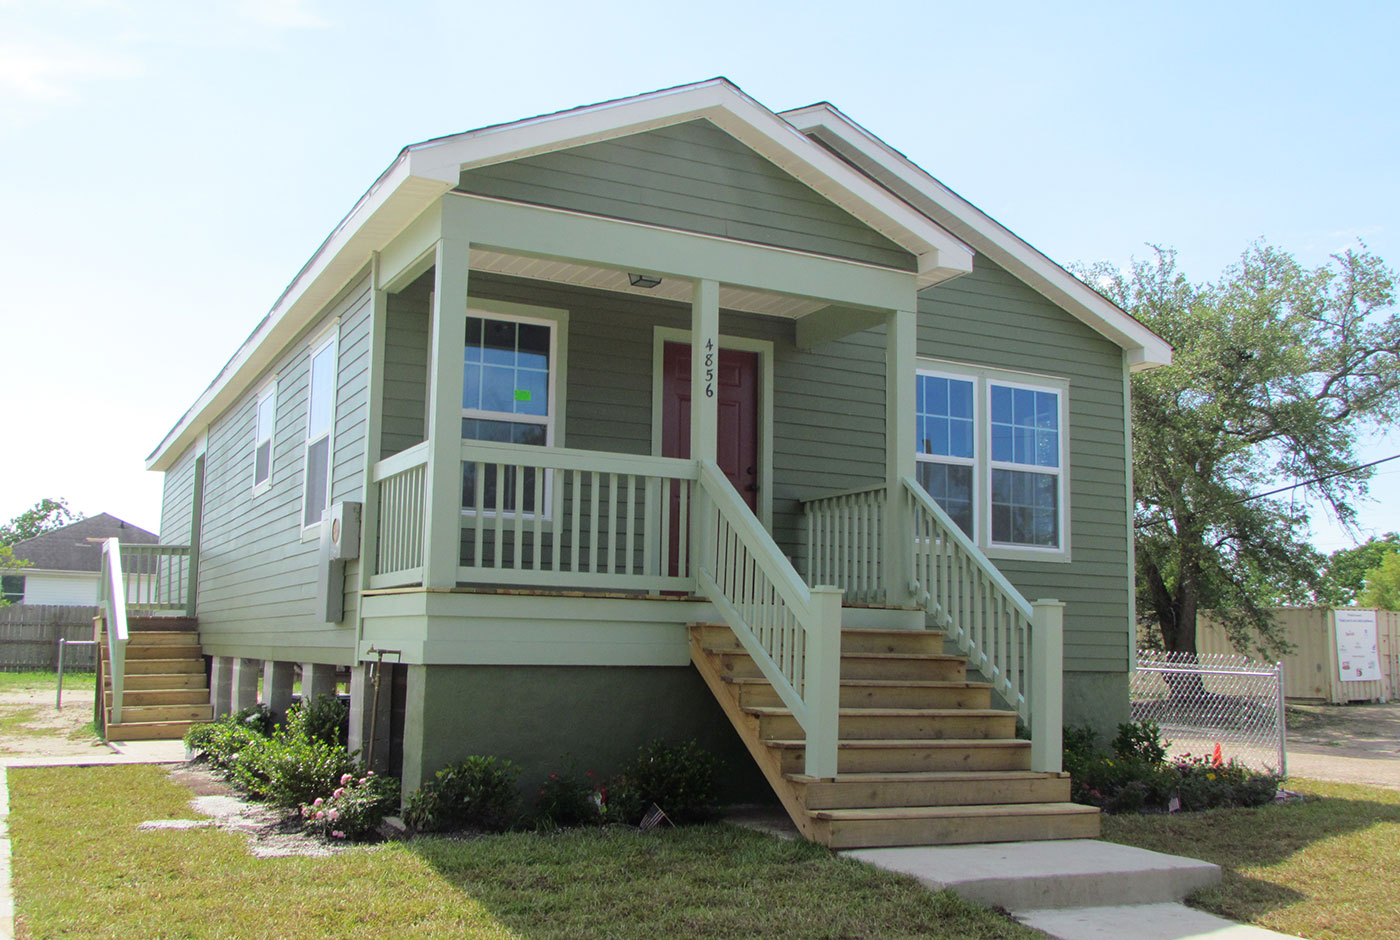 Home features new orleans area habitat for humanity for U build it floor plans